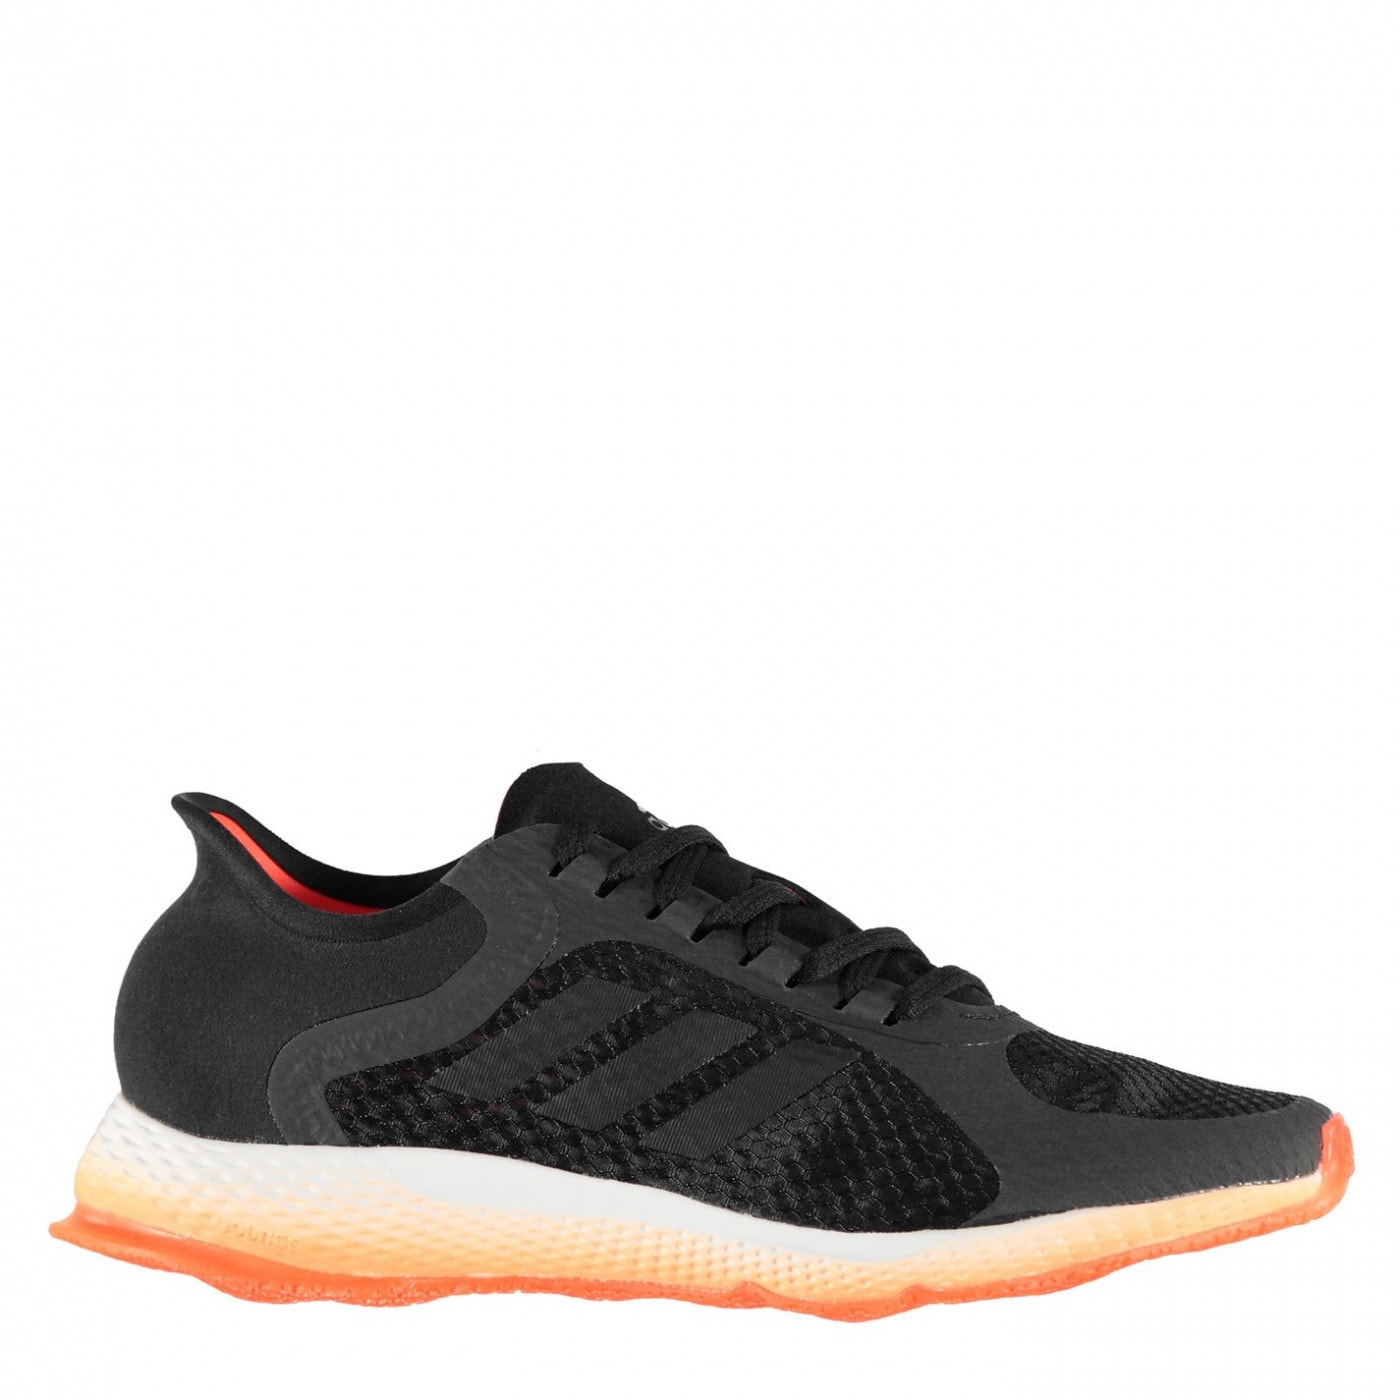 Adidas Focus Breathe Womens Running Shoes